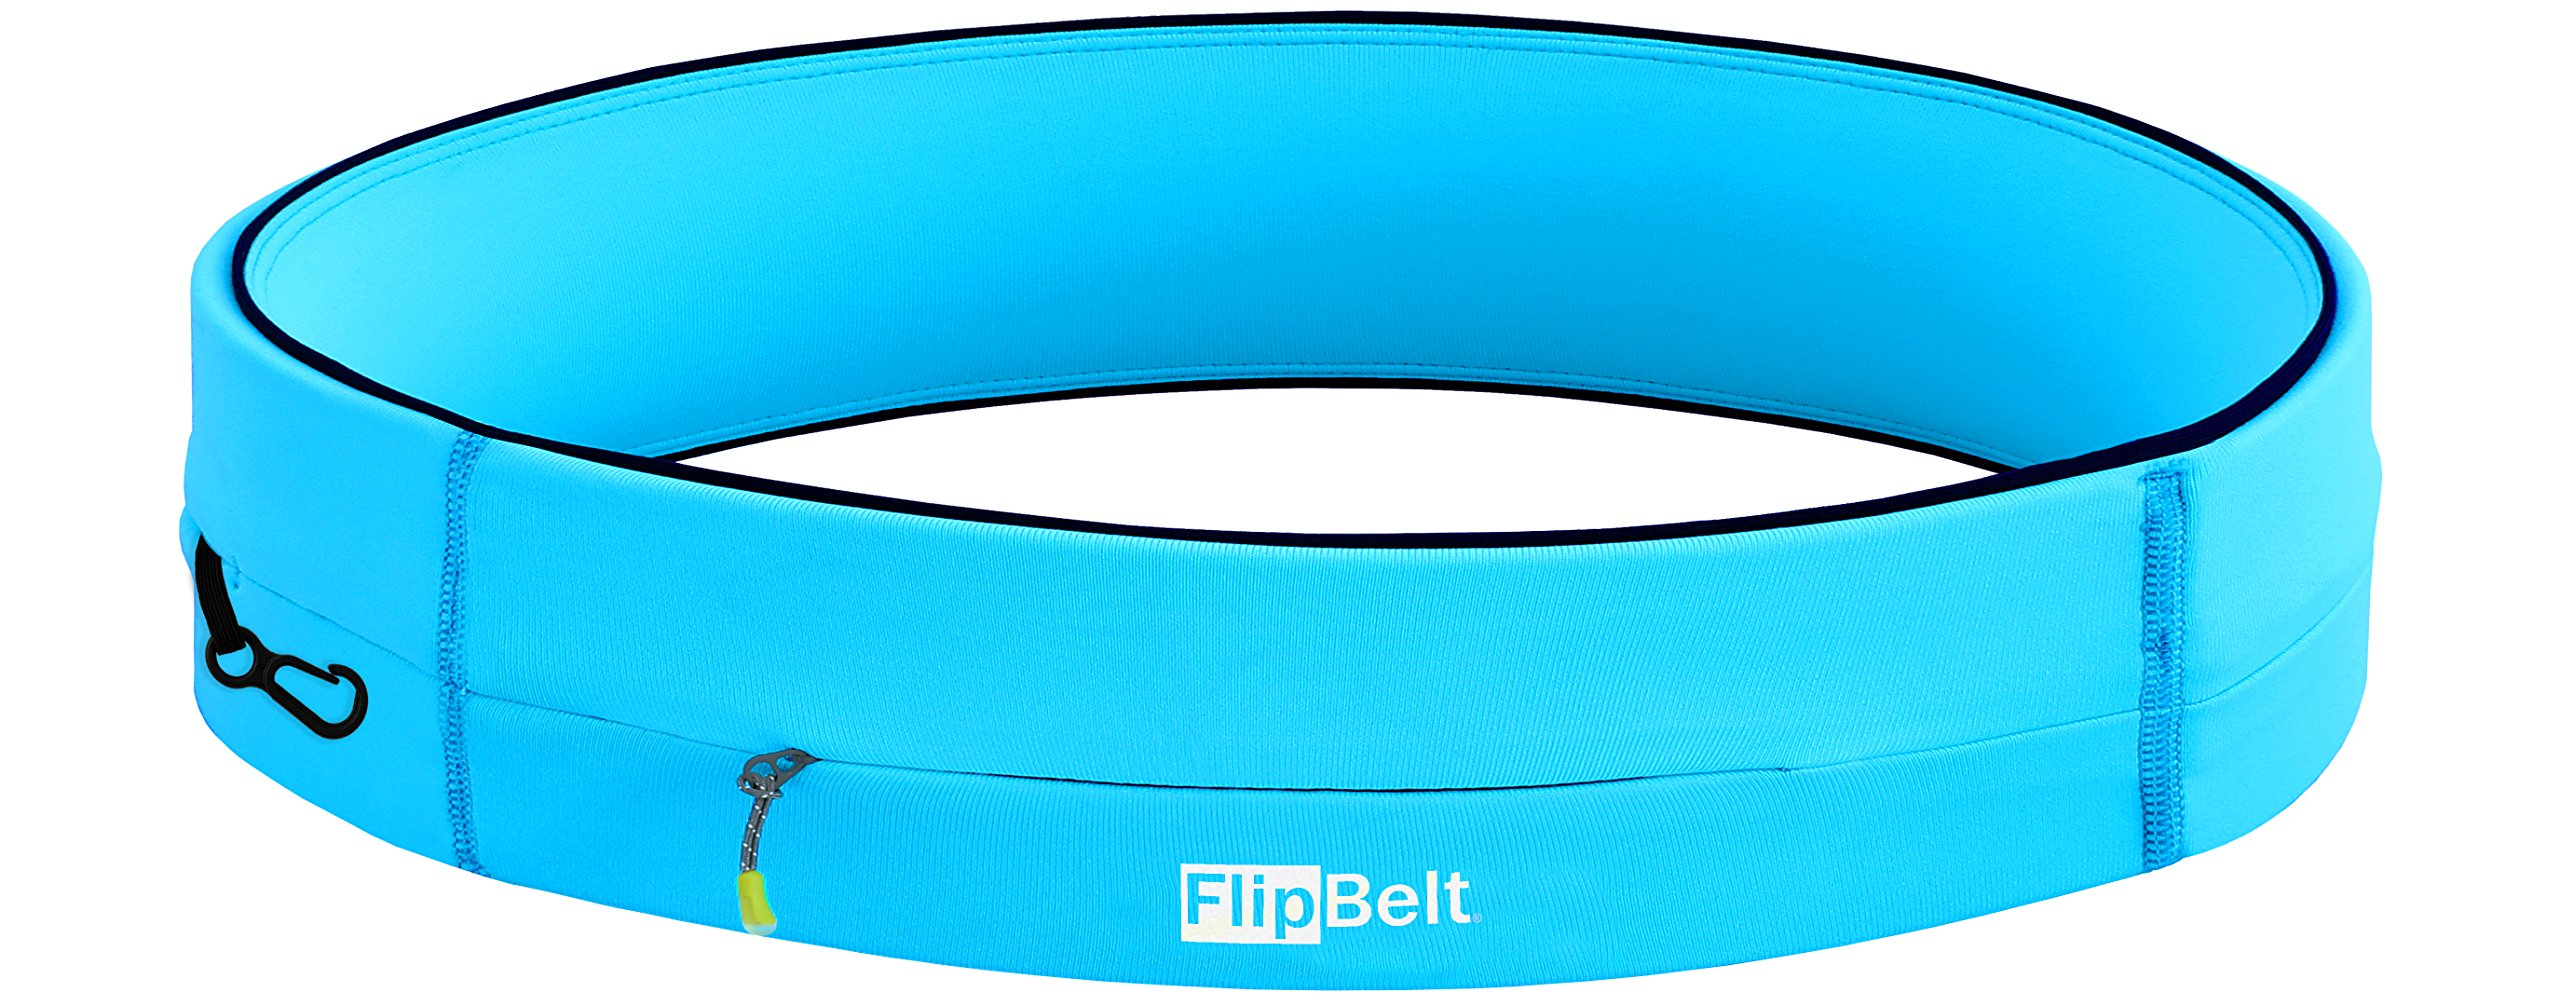 FlipBelt Running & Fitness Workout Belt, Aqua, X-Large by FlipBelt